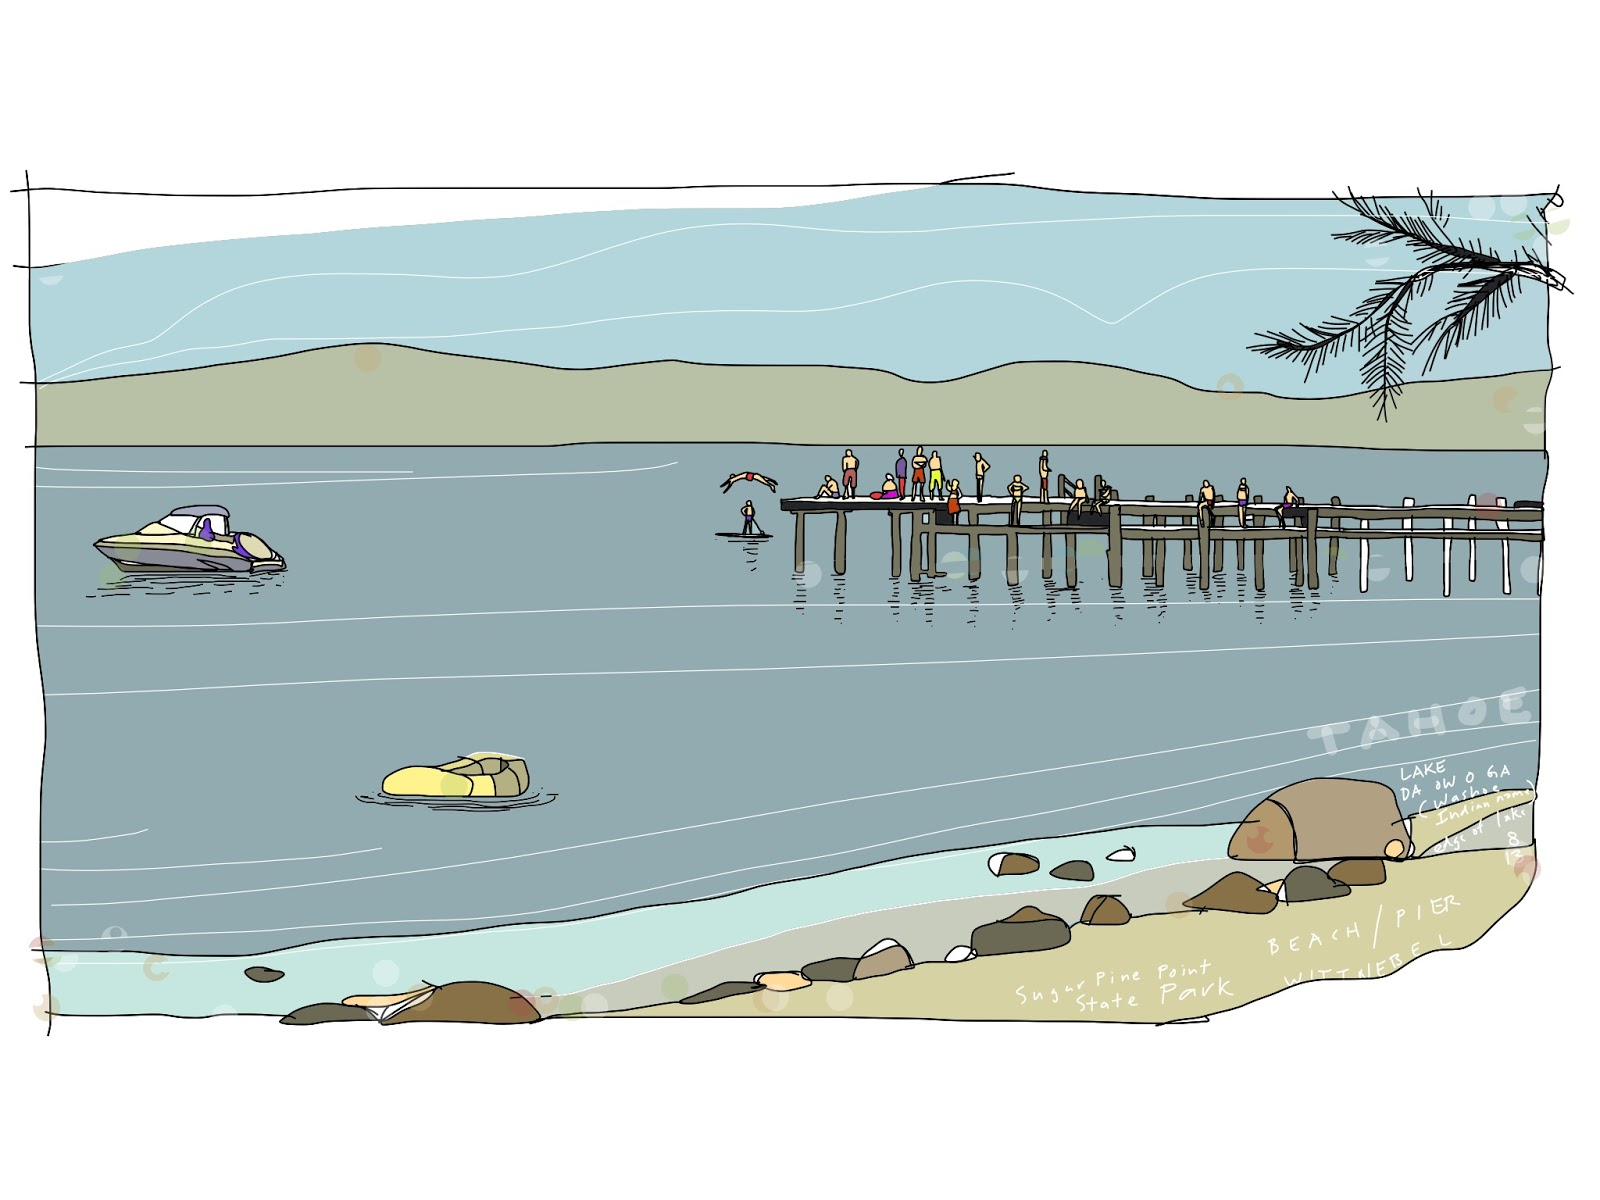 Drawing on the world lake tahoe da ow a ga dock and swimmers e completed painted view of the wood dock at the sugar pine point state park beach lake tahoee native american washoe tribe inhabited the tahoe freerunsca Gallery